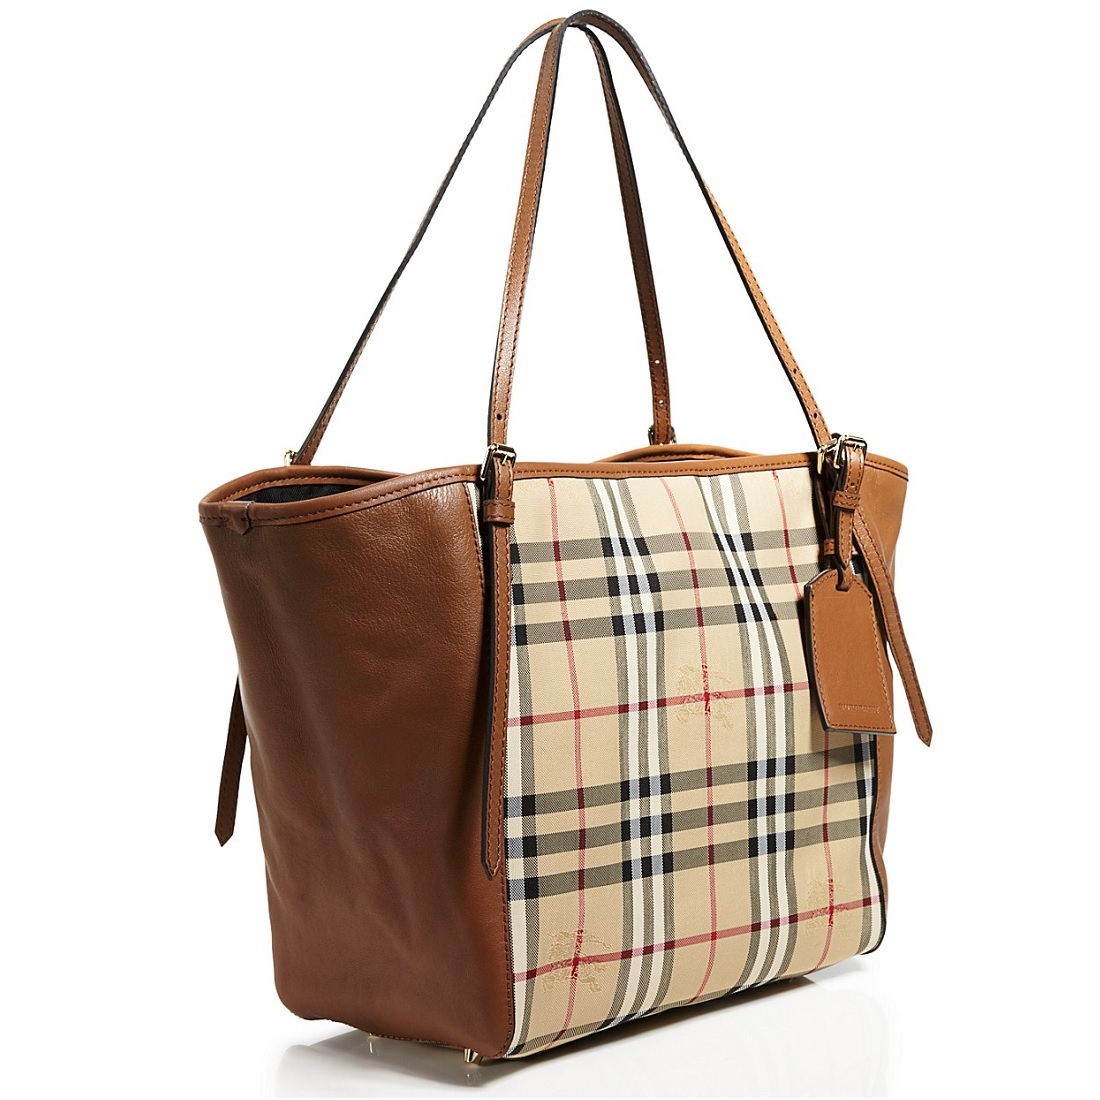 e31a5f44d117 ... Picture of Burberry Horseferry Check Small Canterbury Panels Tote. Home     Handbags ...